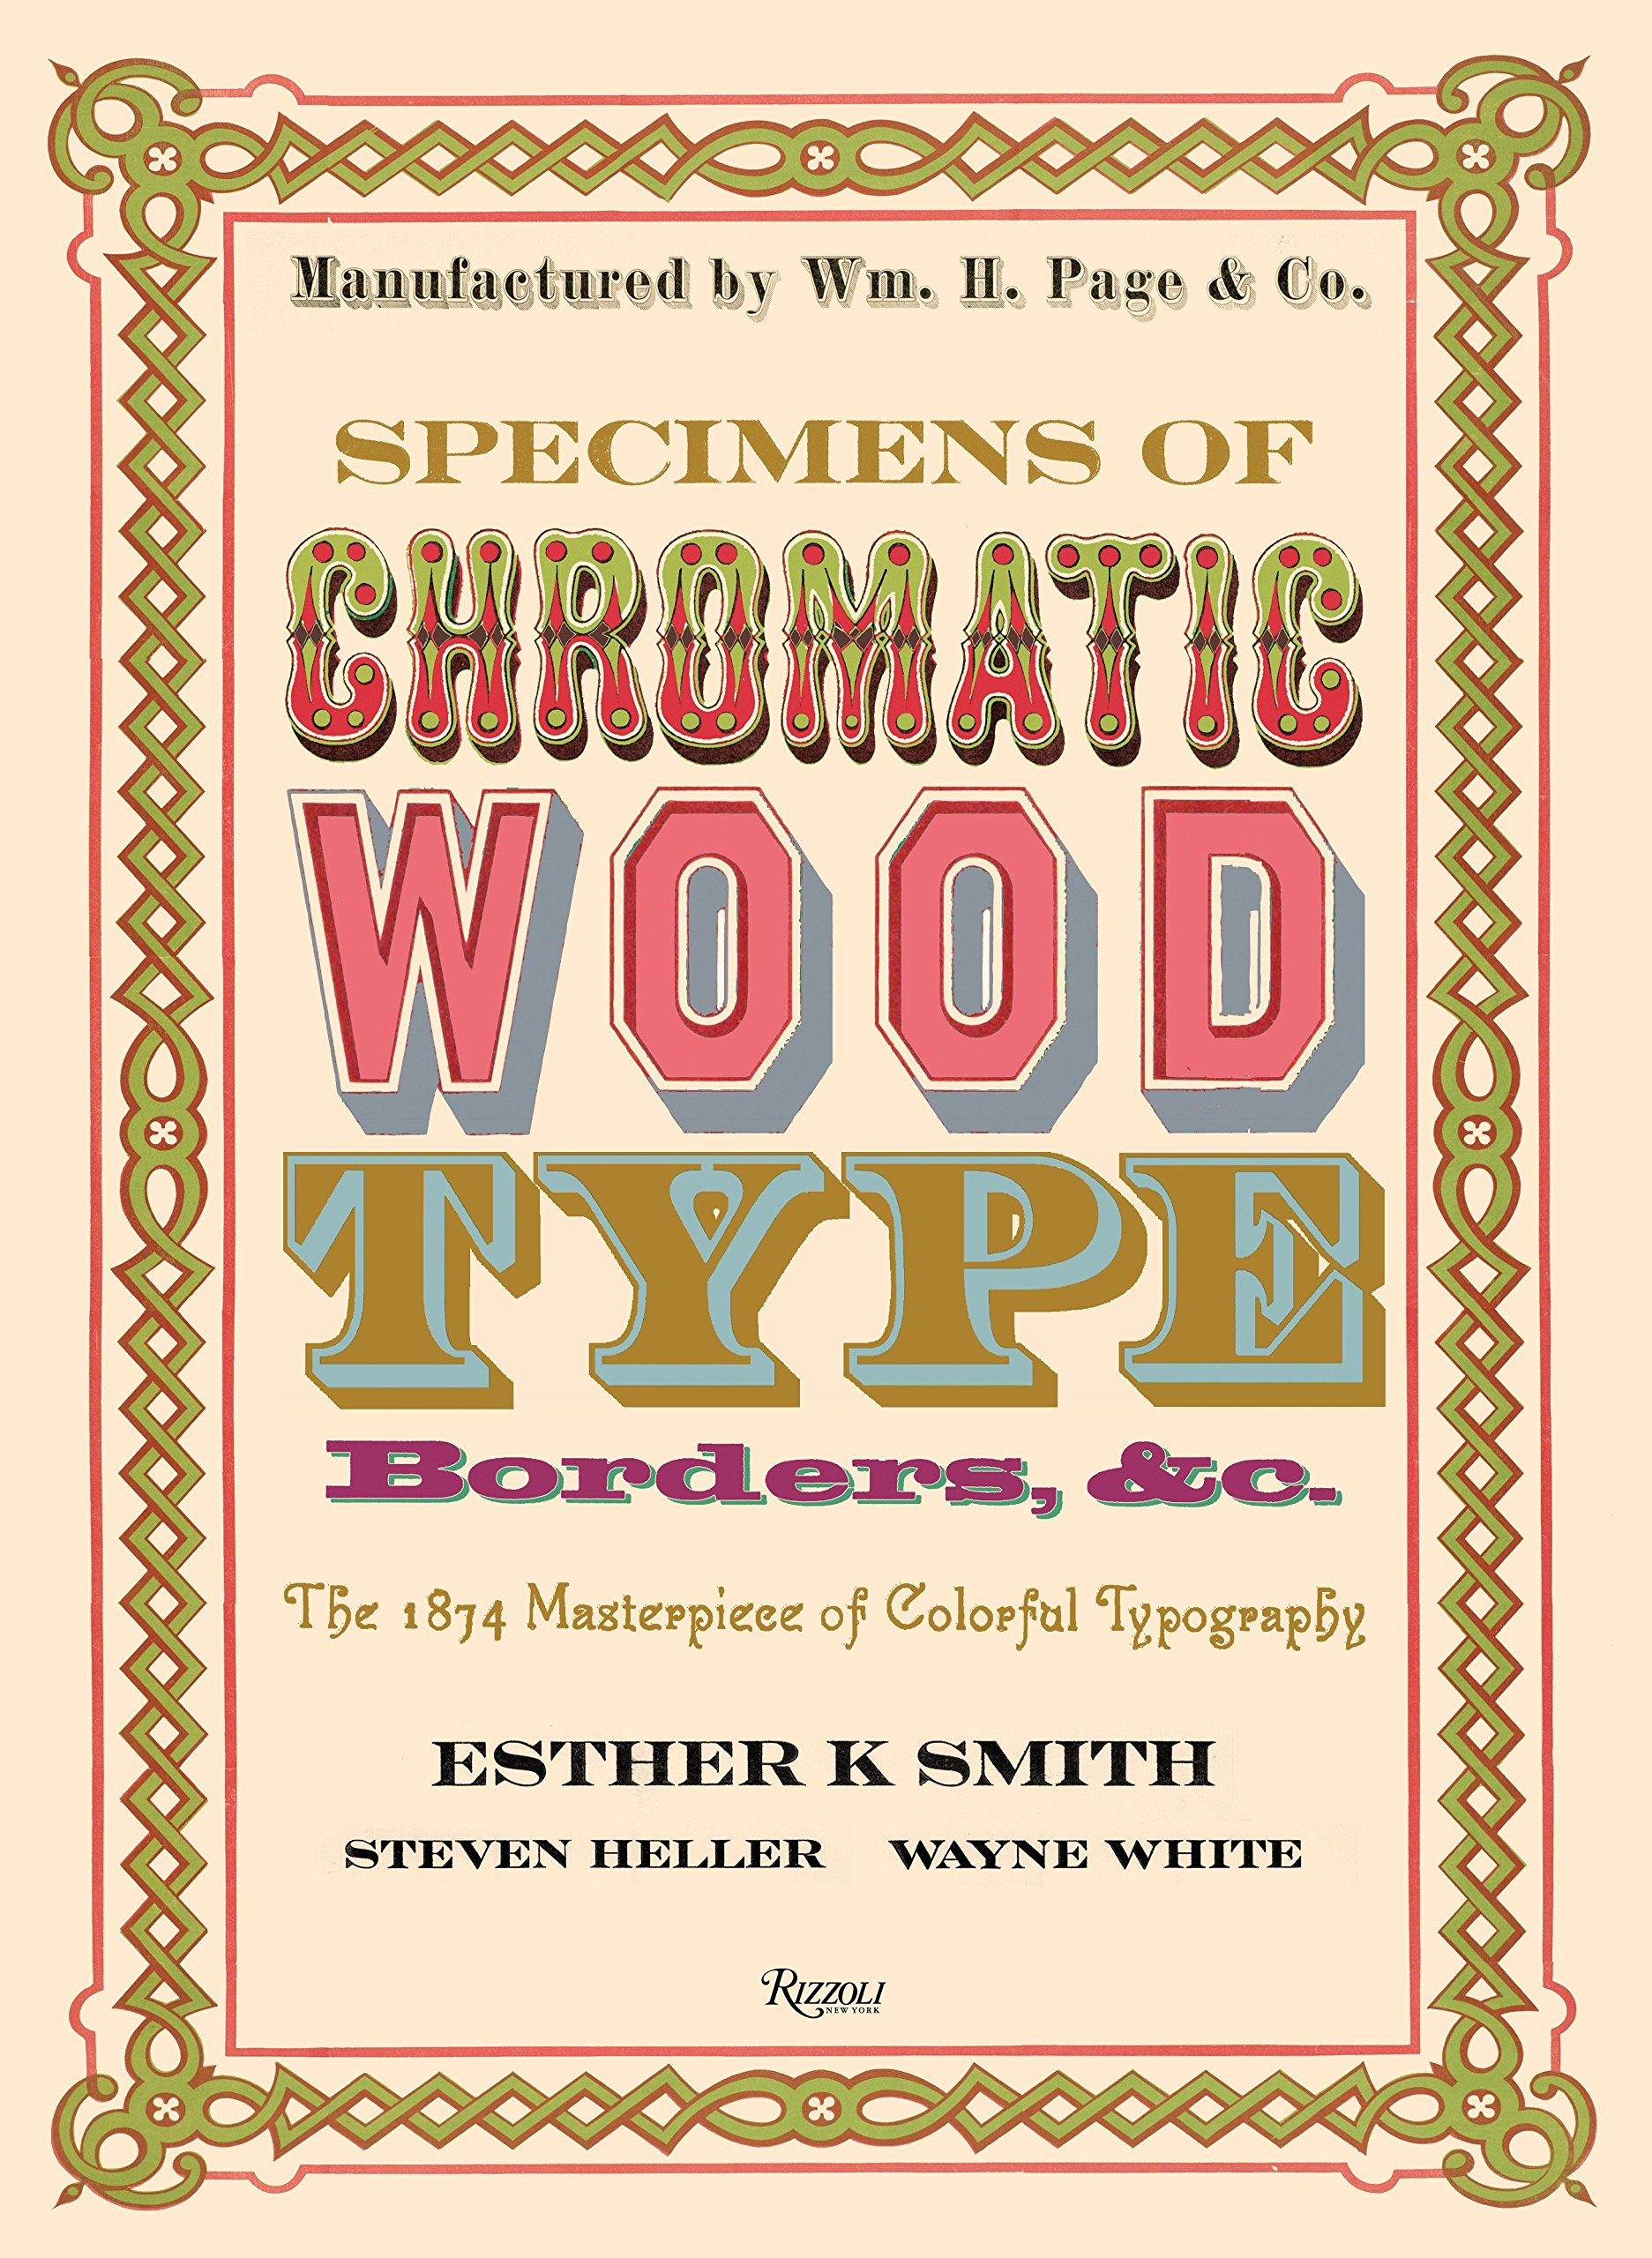 Specimens of Chromatic Wood Type, Borders, &c.: The 1874 Masterpiece of Colorful Typography by Rizzoli